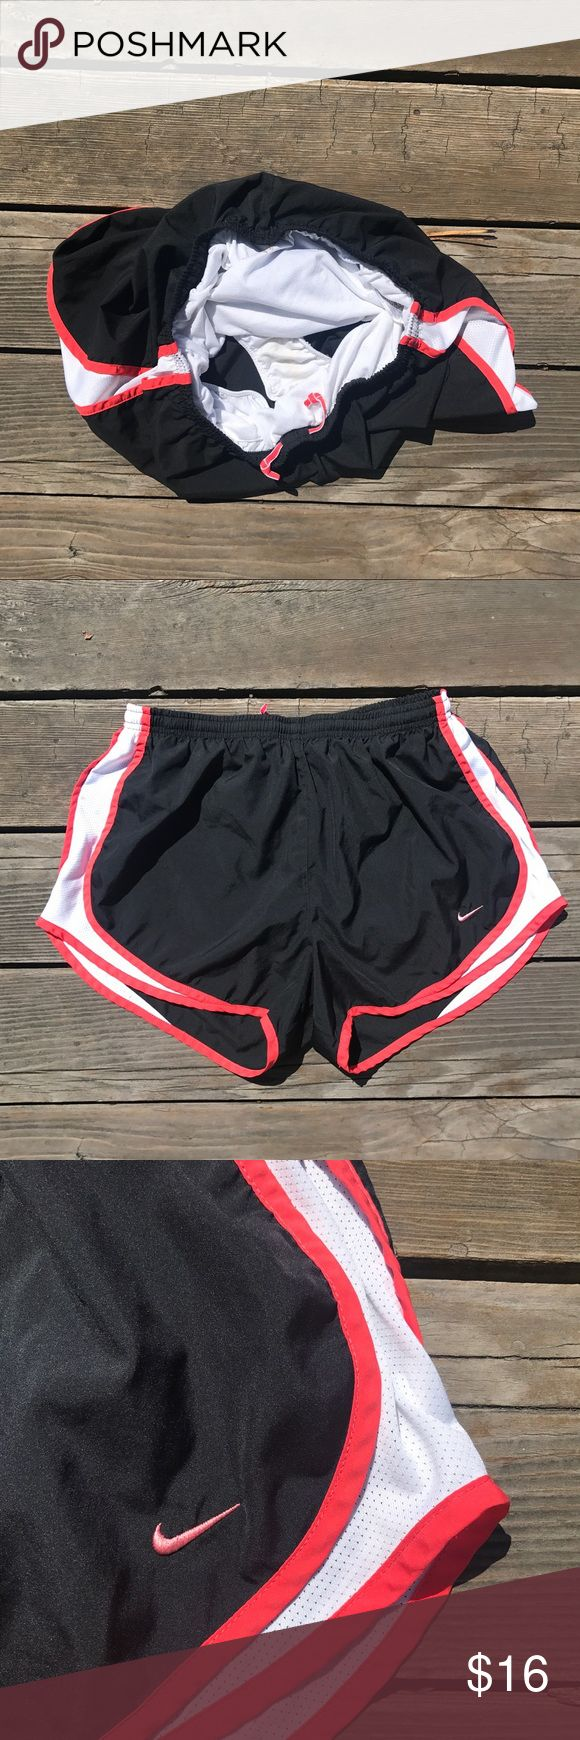 Nike Tempo Dri-Fit shorts Nike black with white and red trim. Good used condition. Nike Shorts